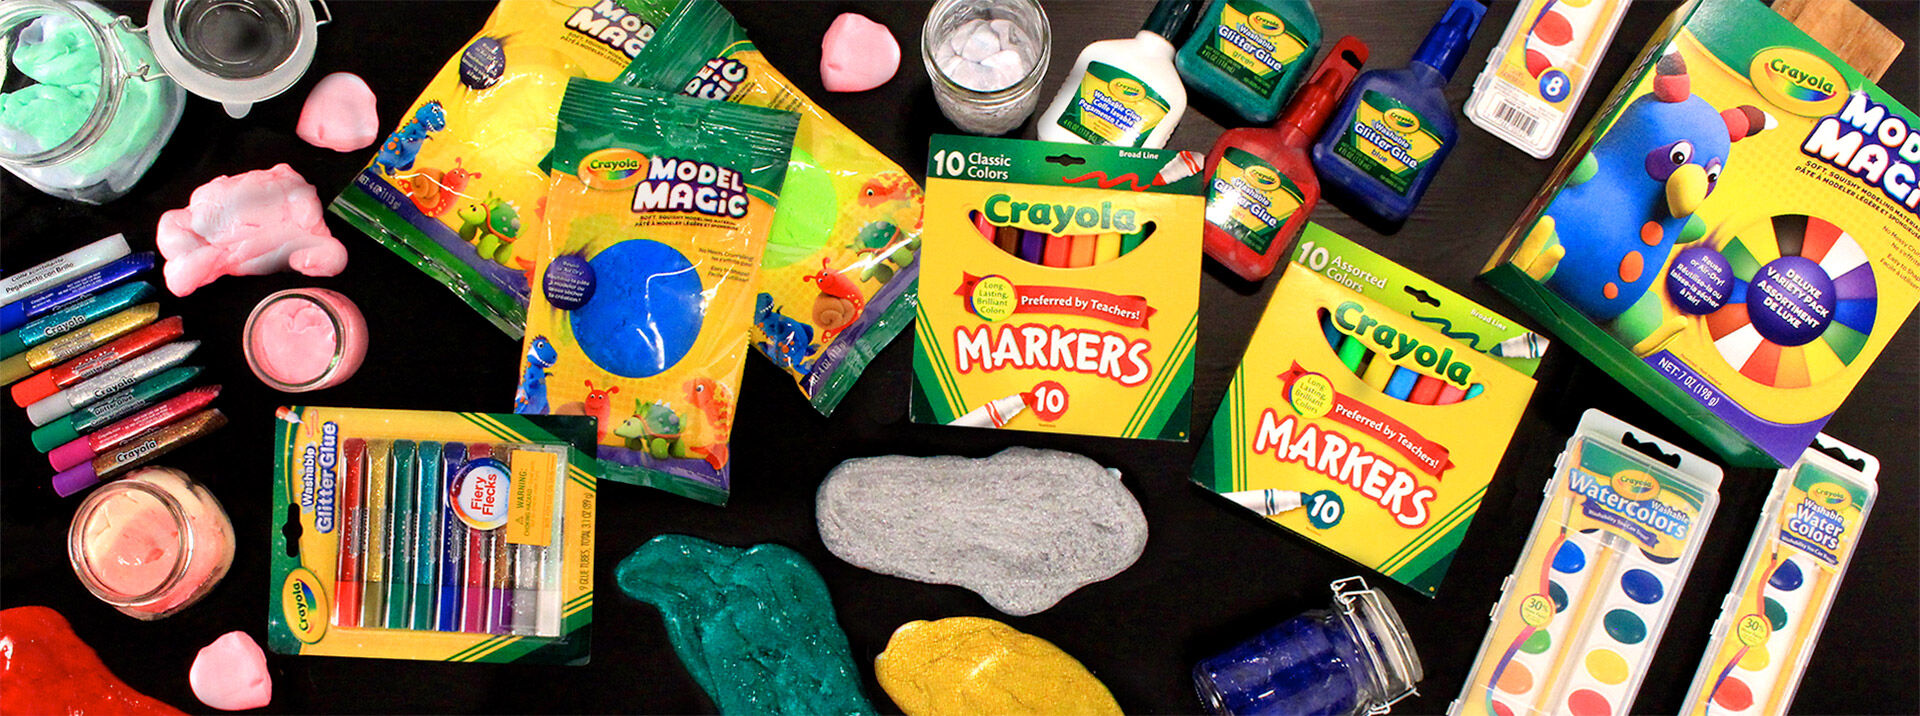 Create It Yourself Slime Materials